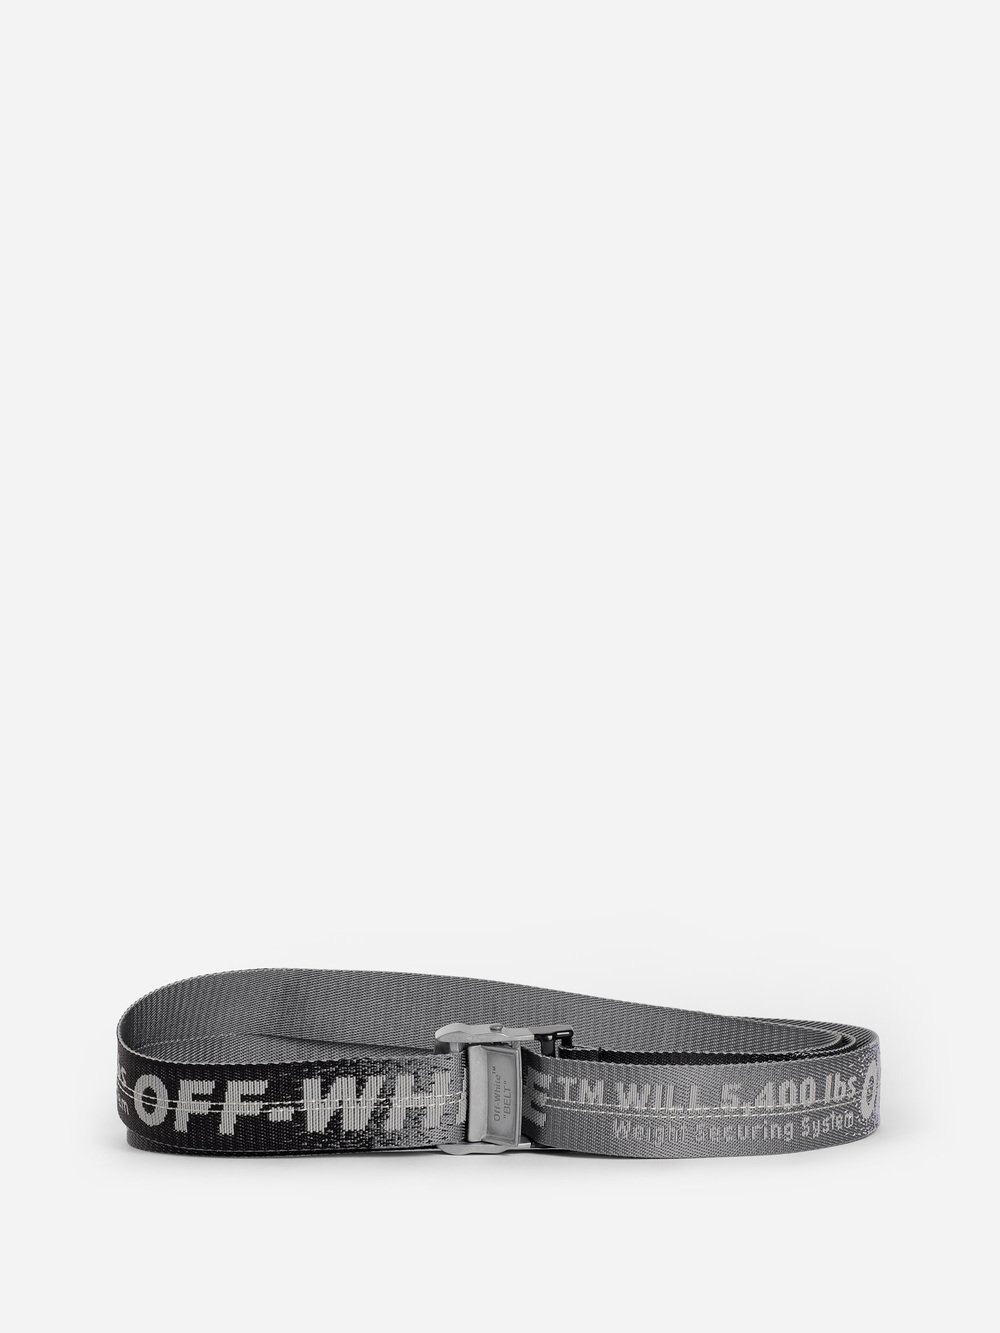 Xxl Sessel Roqu Off White C O Virgil Abloh Belts Omrb012e196470020800